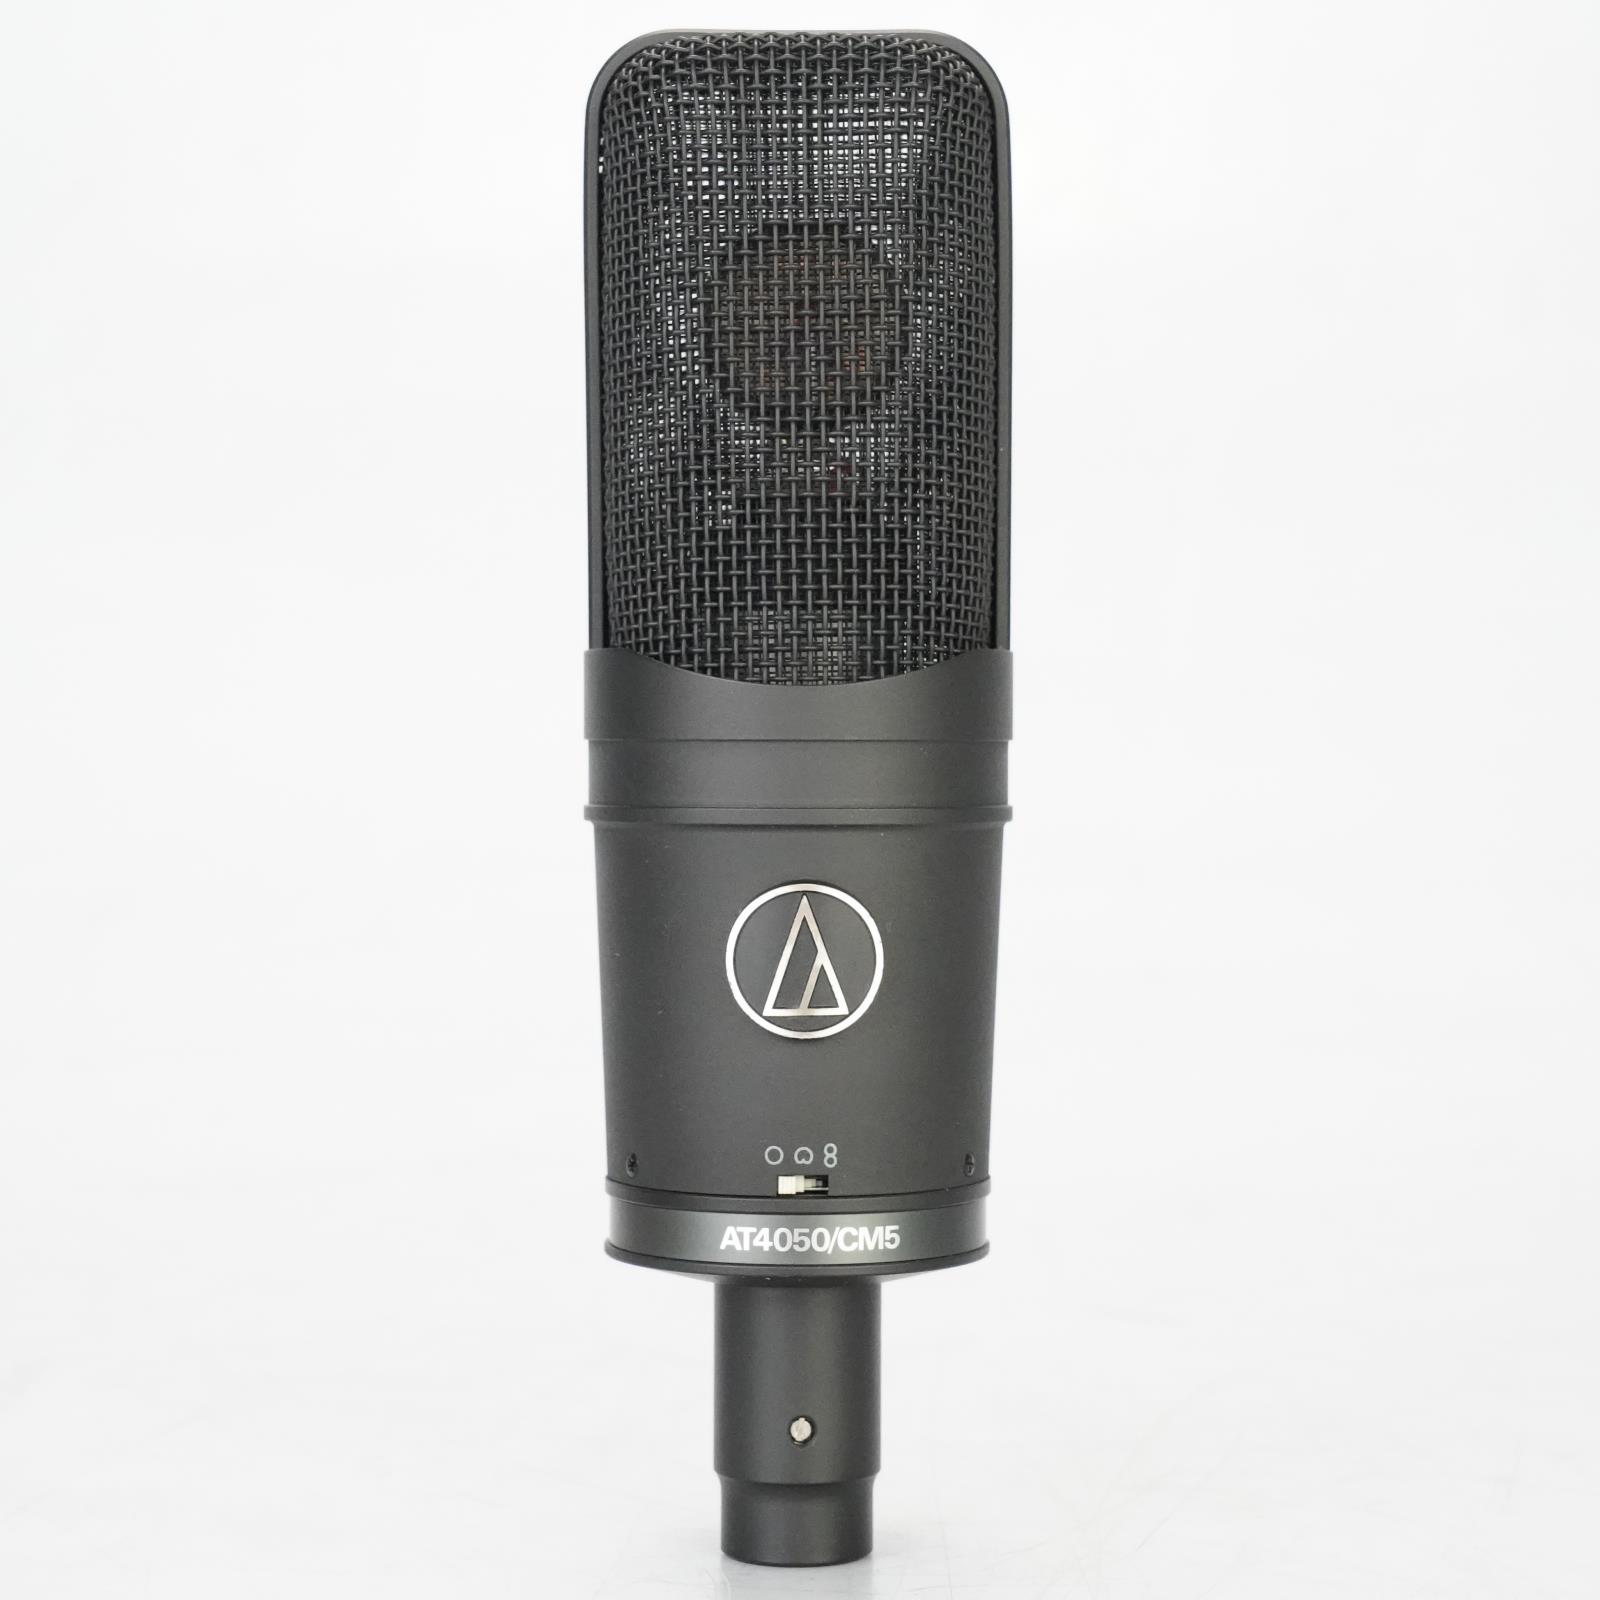 Audio Technica AT4050/CM5 Multi-Pattern Condenser Microphone Ed Cherney #39012